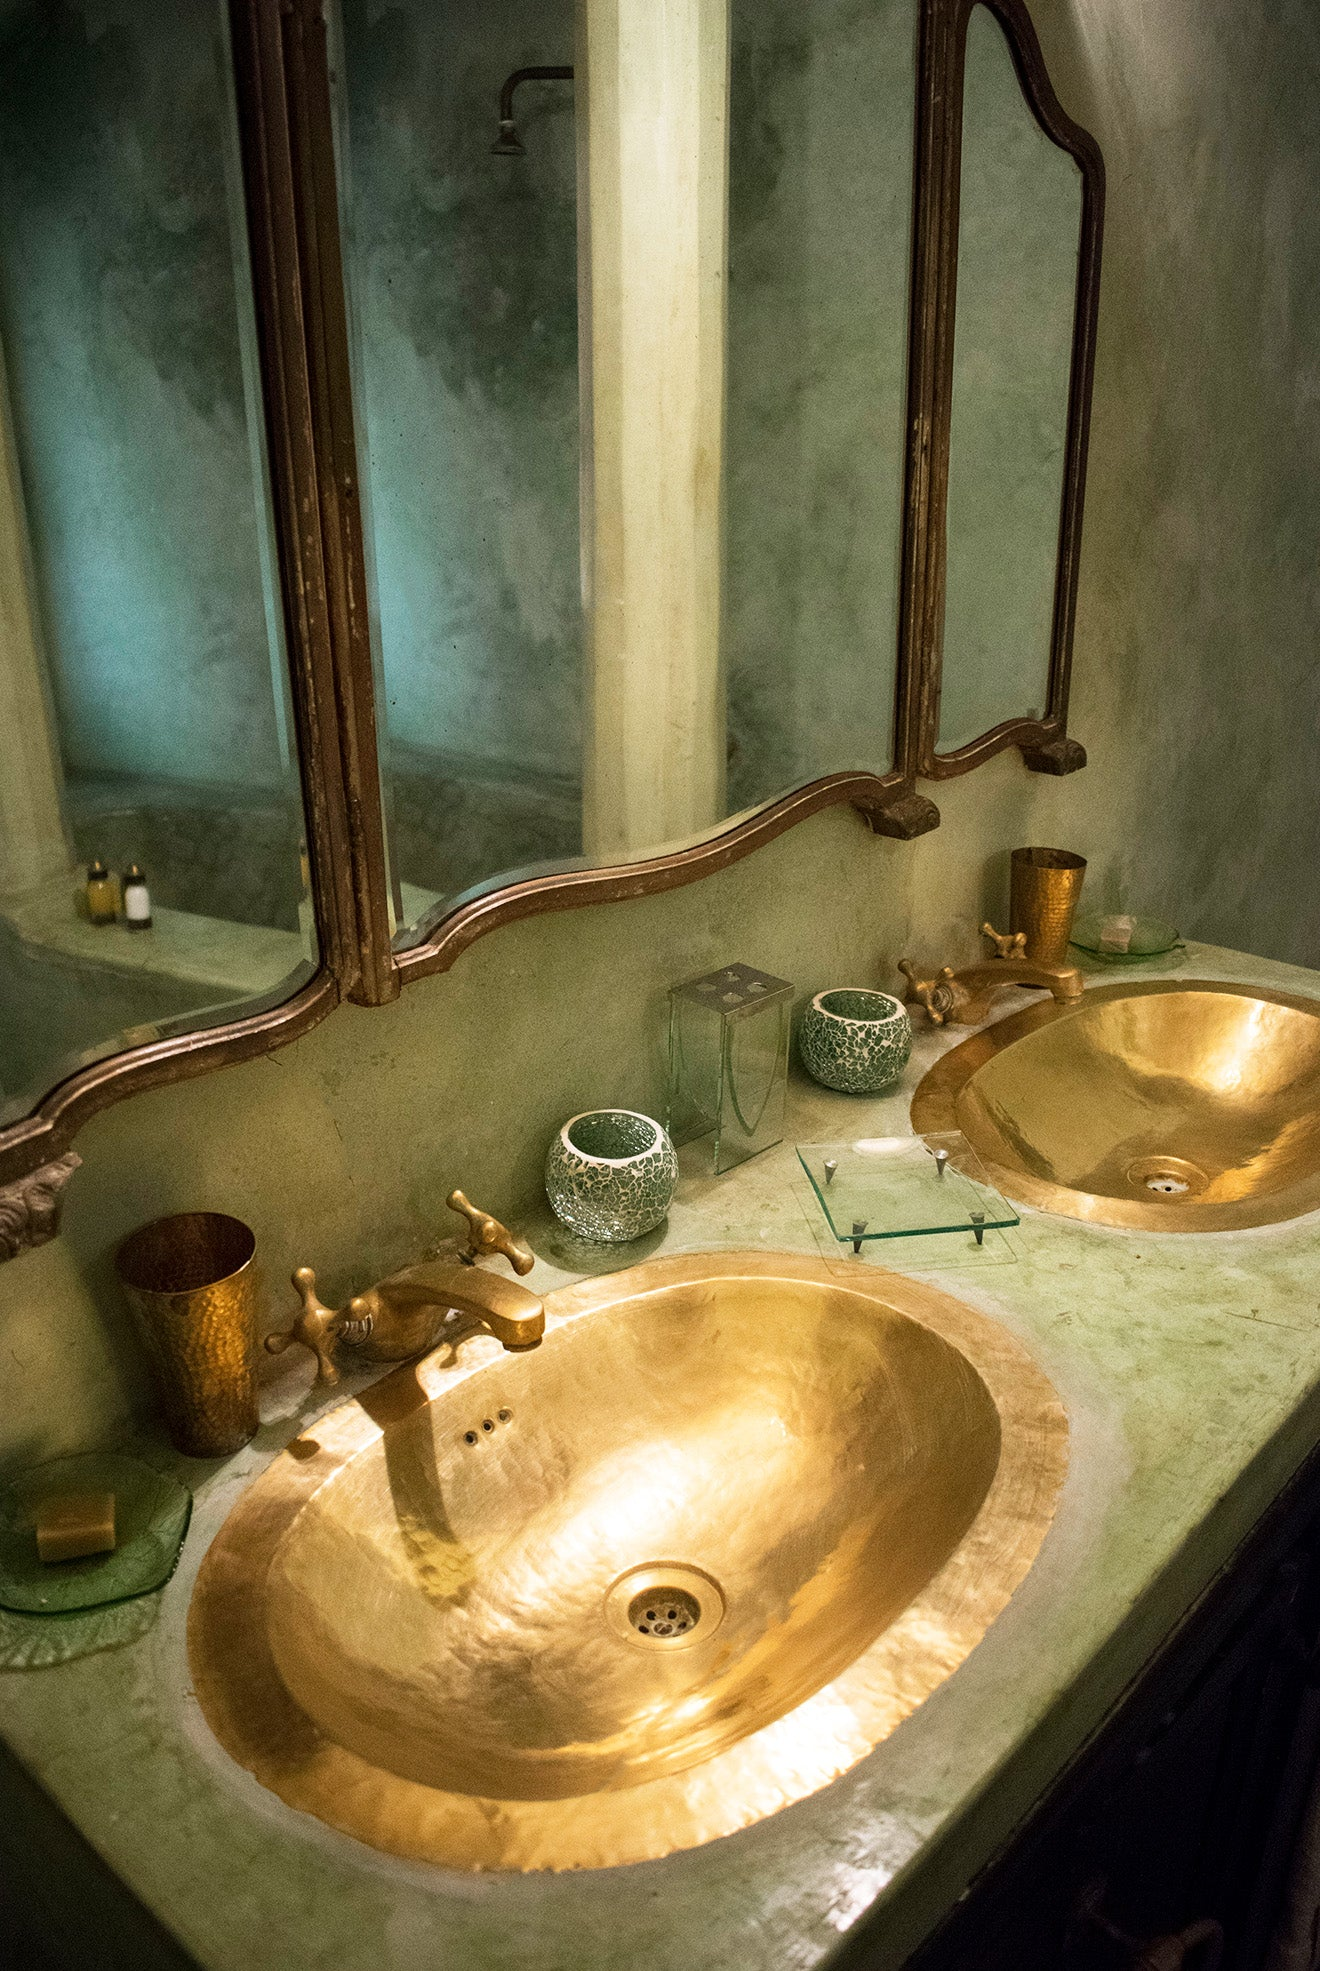 Mint moroccan bathroom with brass gold wash basins